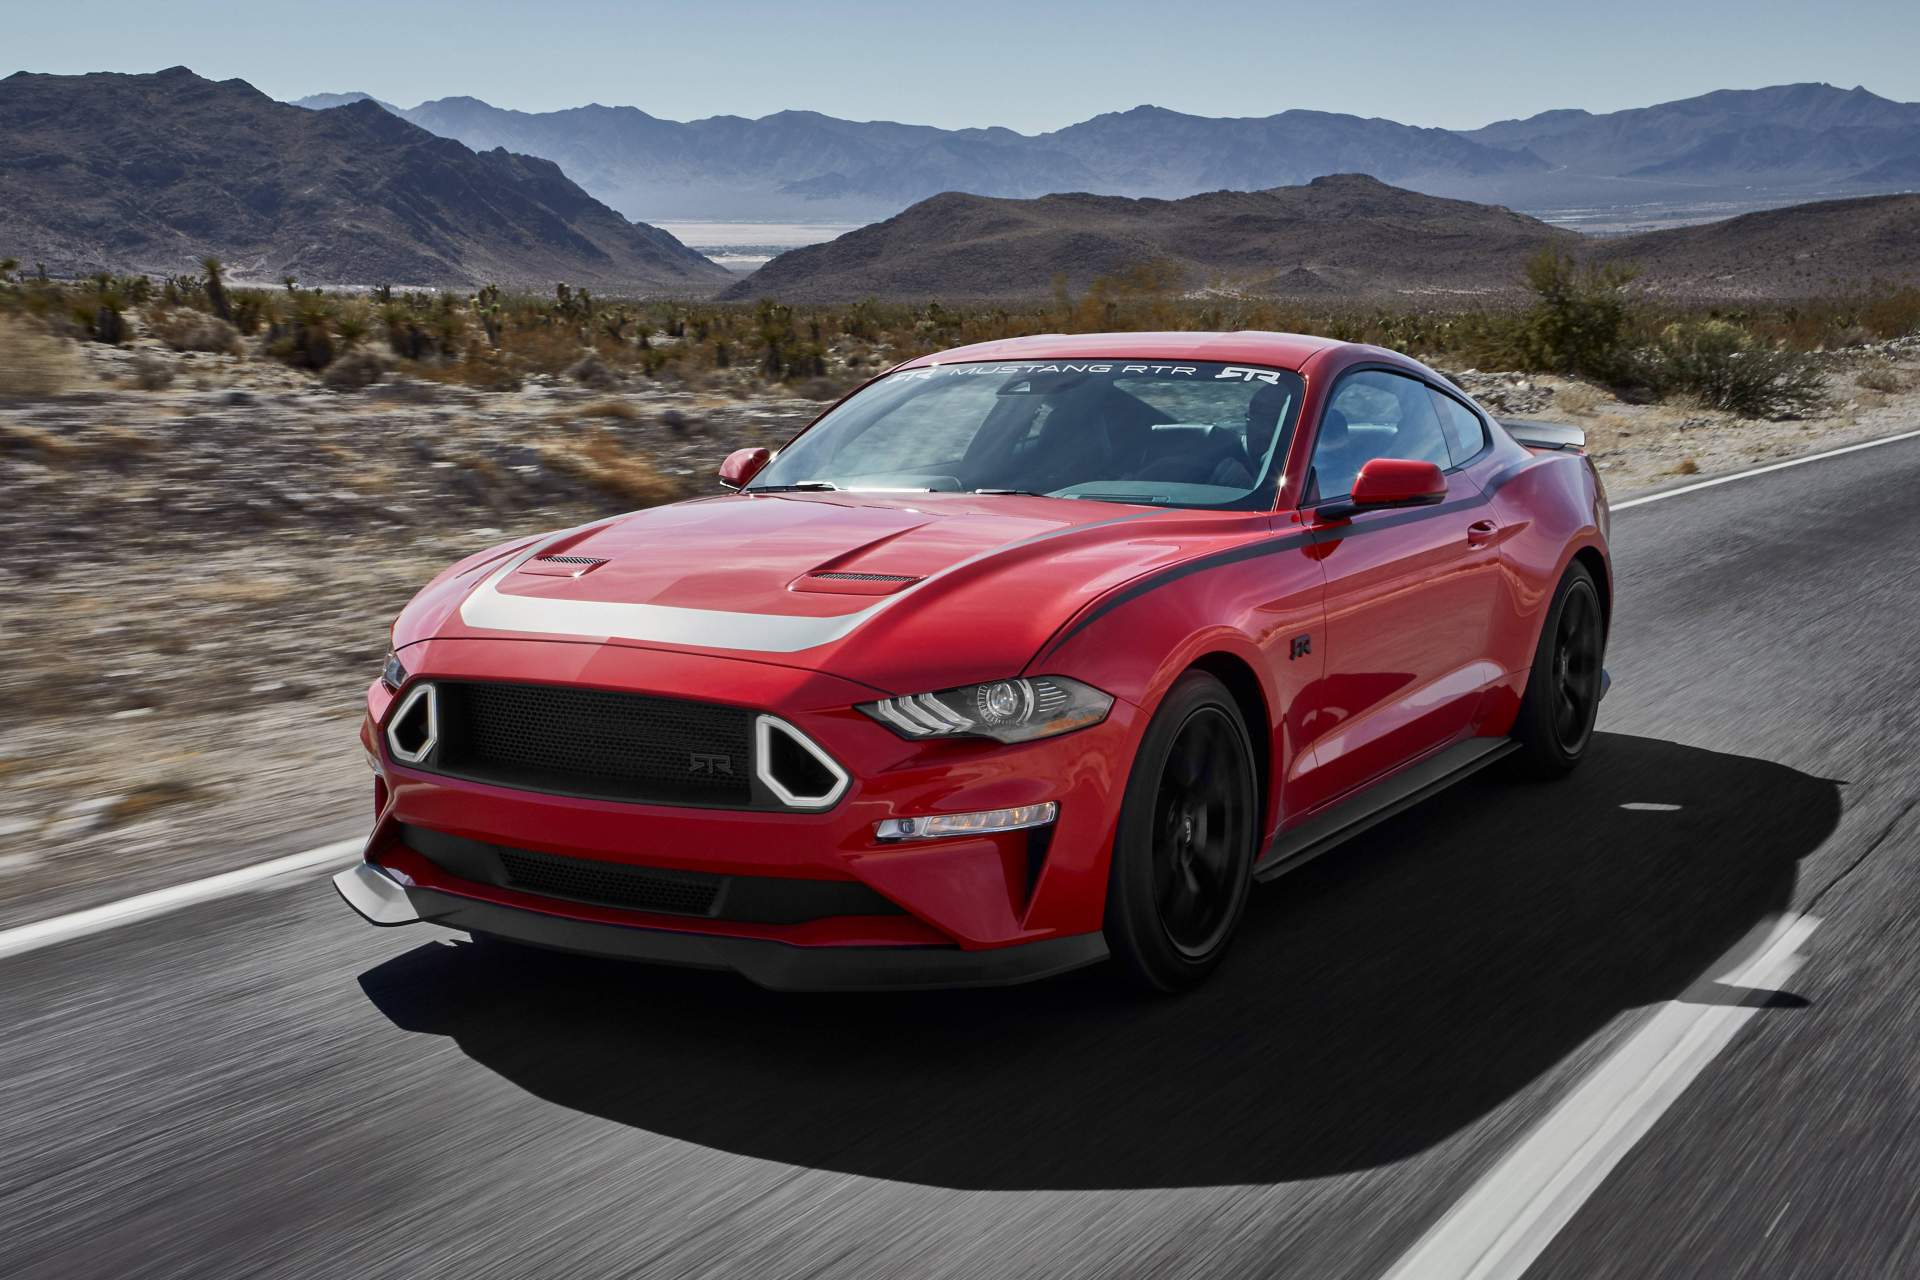 Index of /wp-content/gallery/2018/2019-ford-series-1-mustang-rtr/